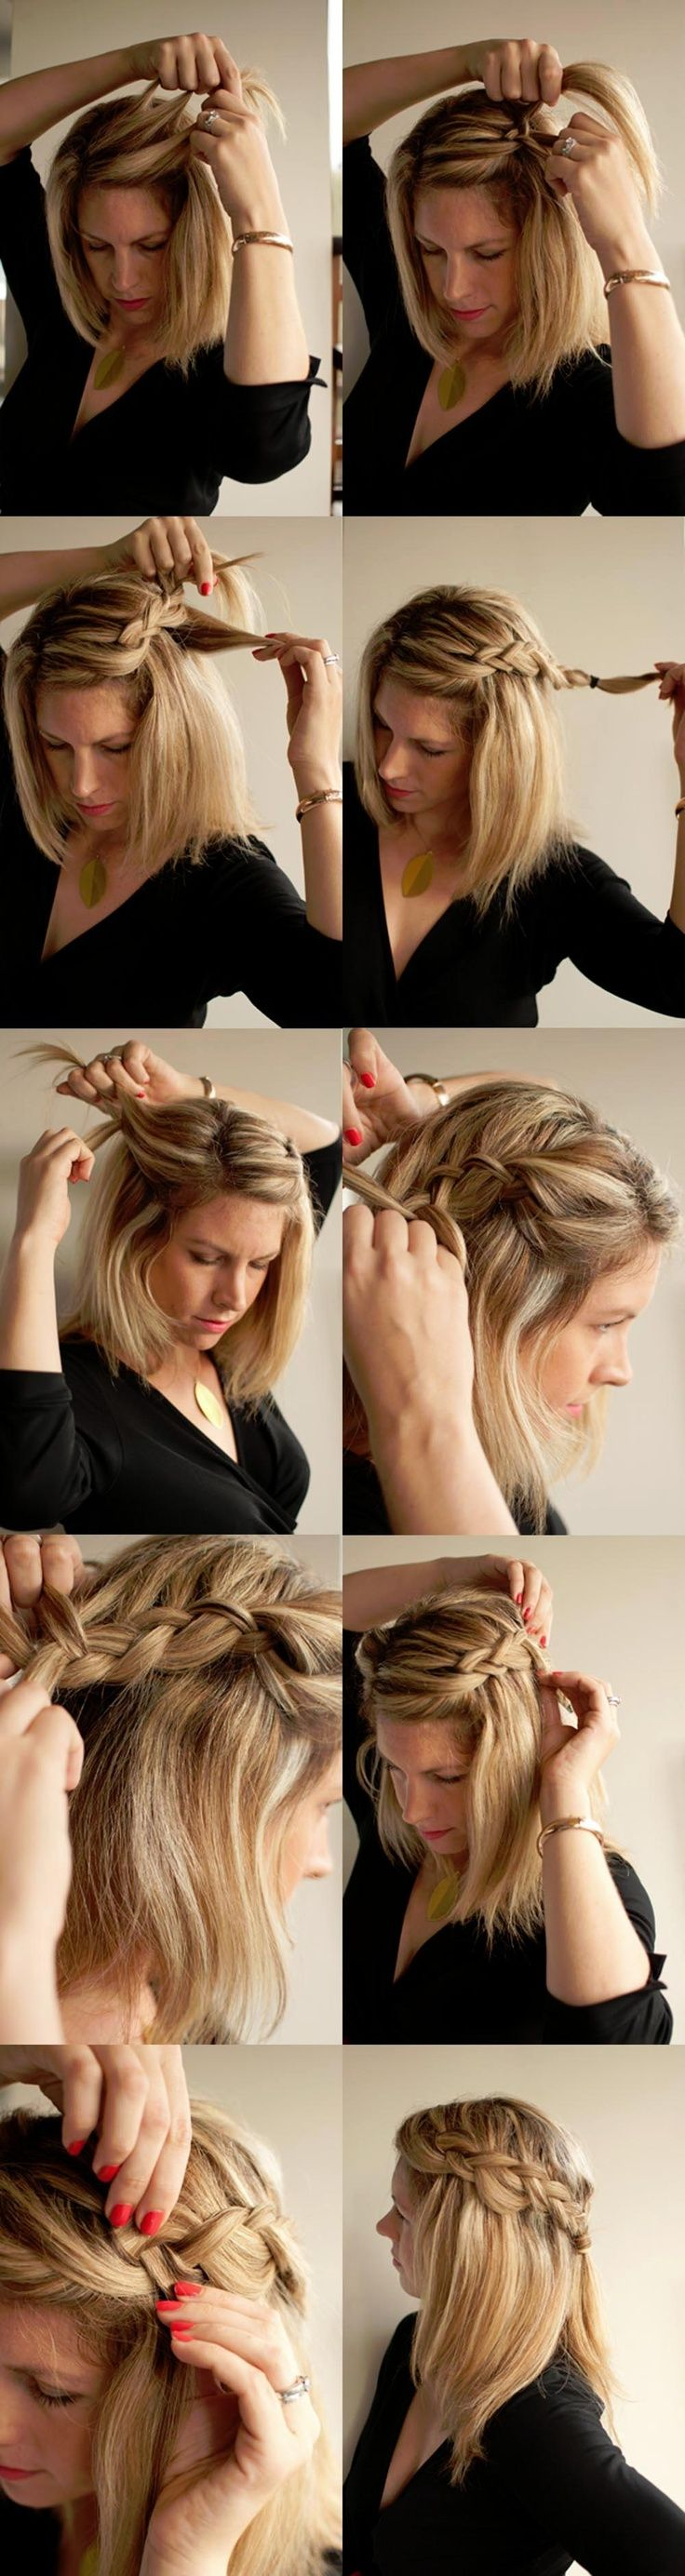 #hair tutorials #hairstyle tutorials